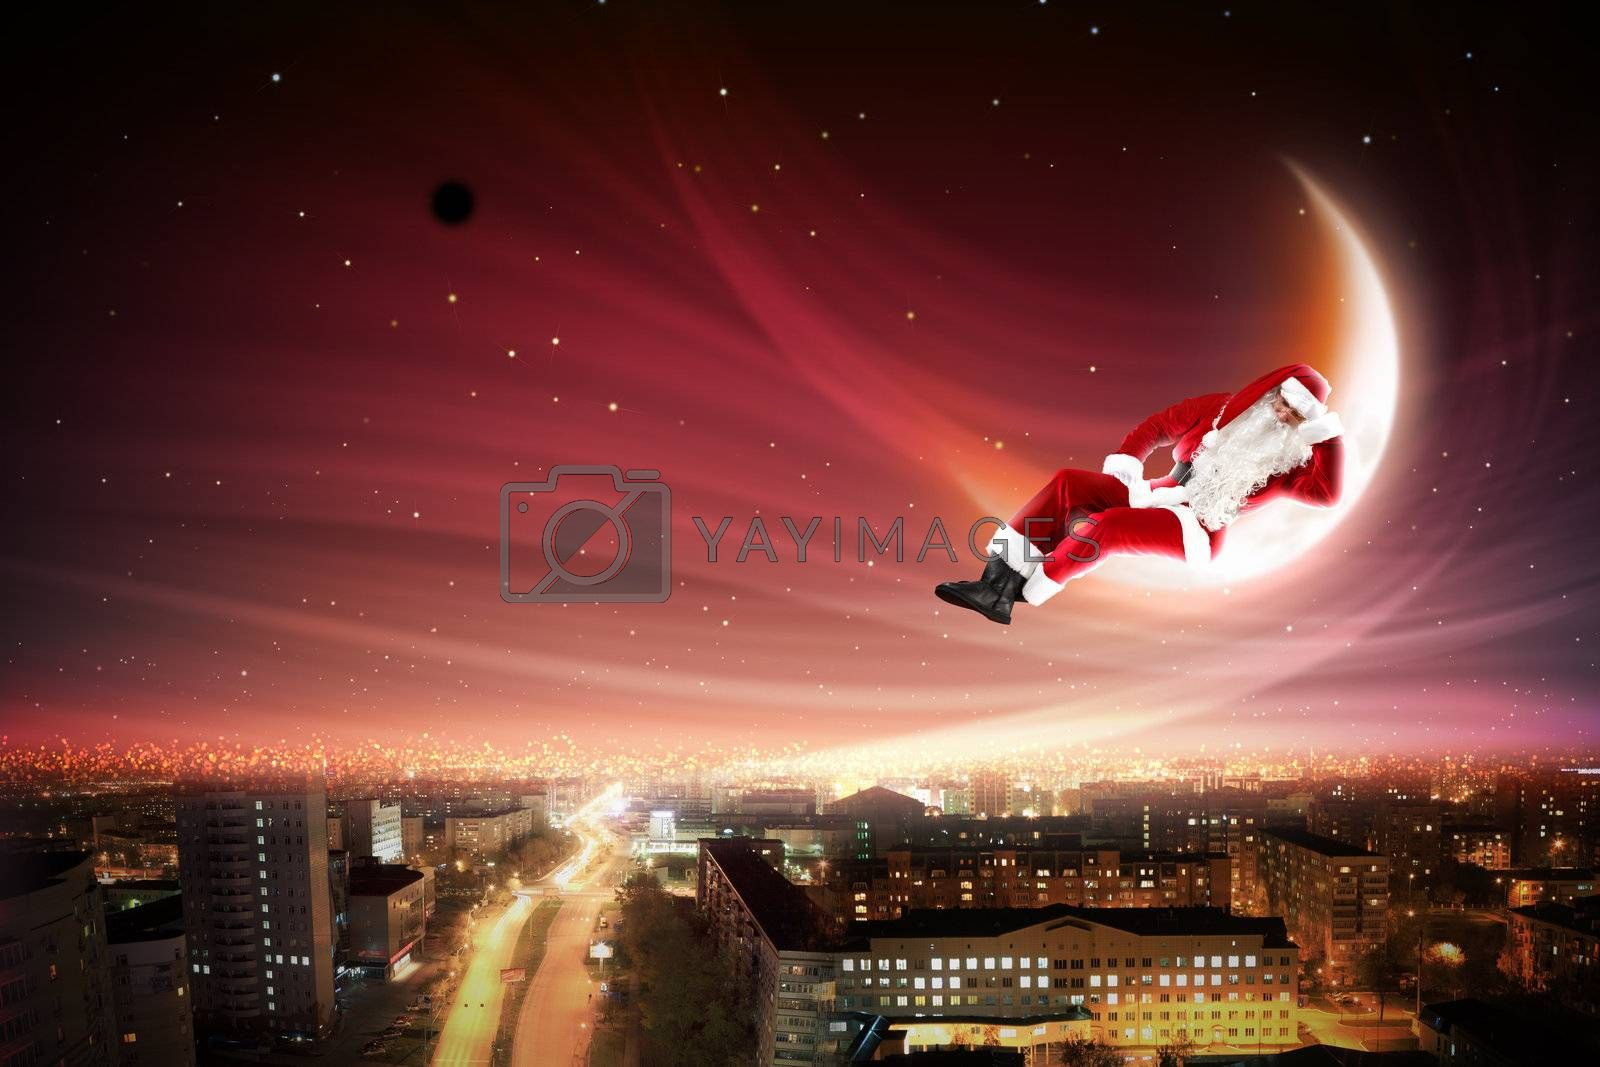 Santa on the moon by Sergey Nivens